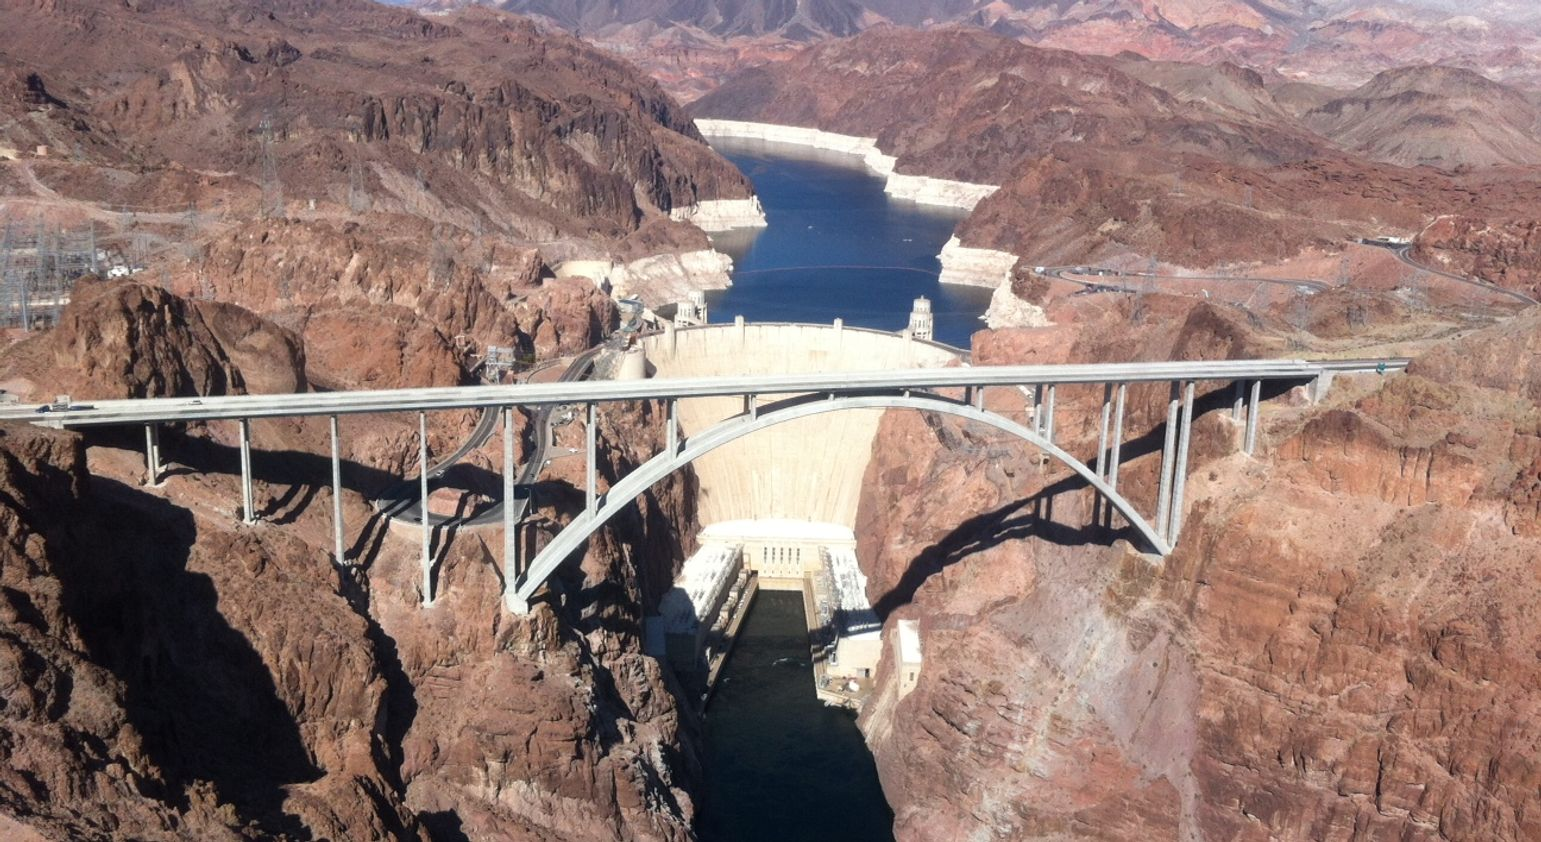 The Hoover Dam and the surrounding scenery seen from above on a helicopter tour.